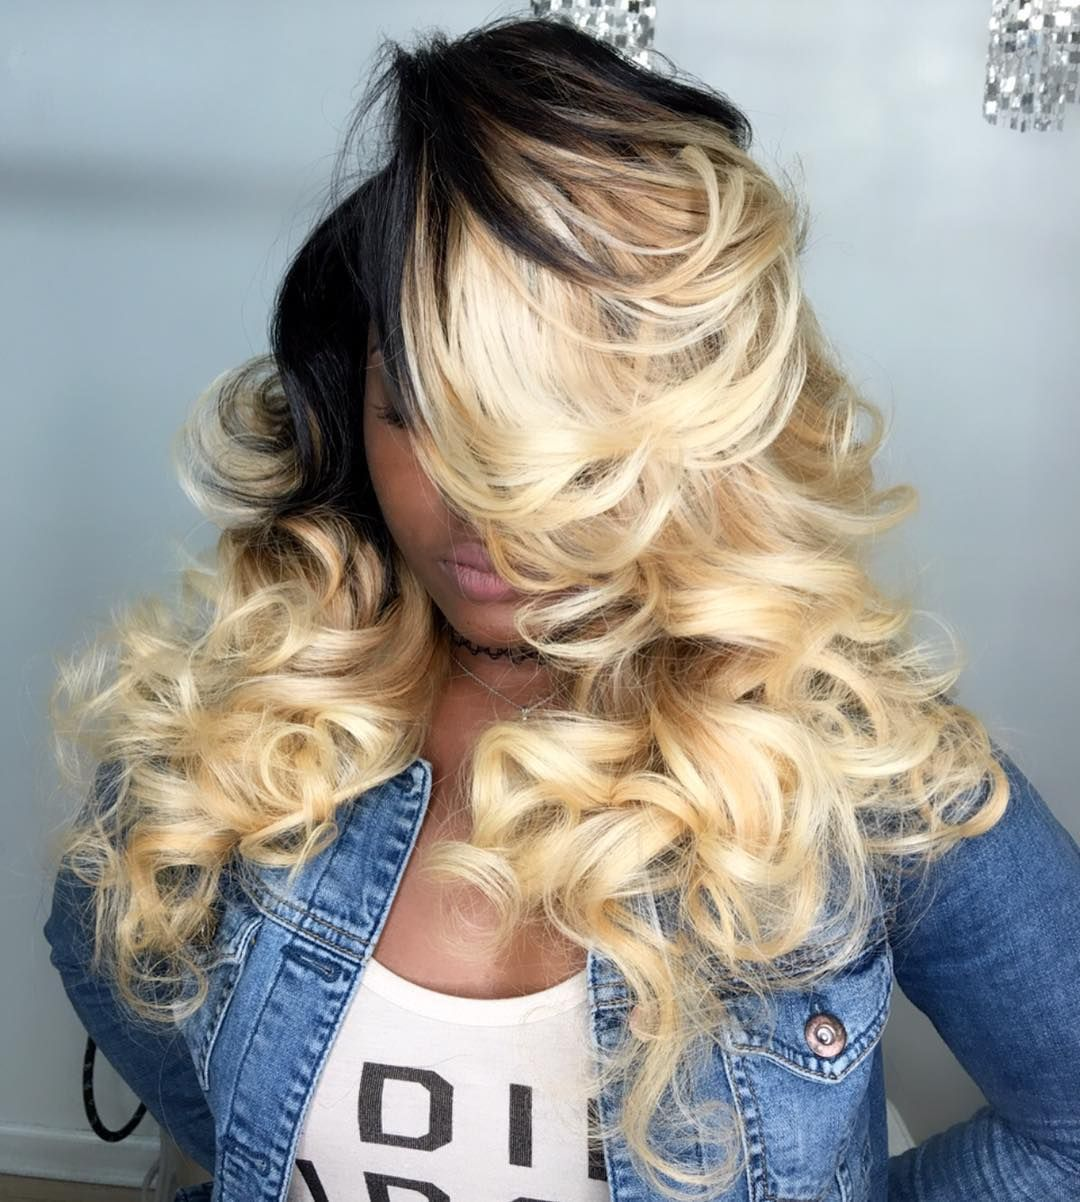 Sew Hot: 40 Gorgeous Sew-In Hairstyles | Hair & Beauty ...